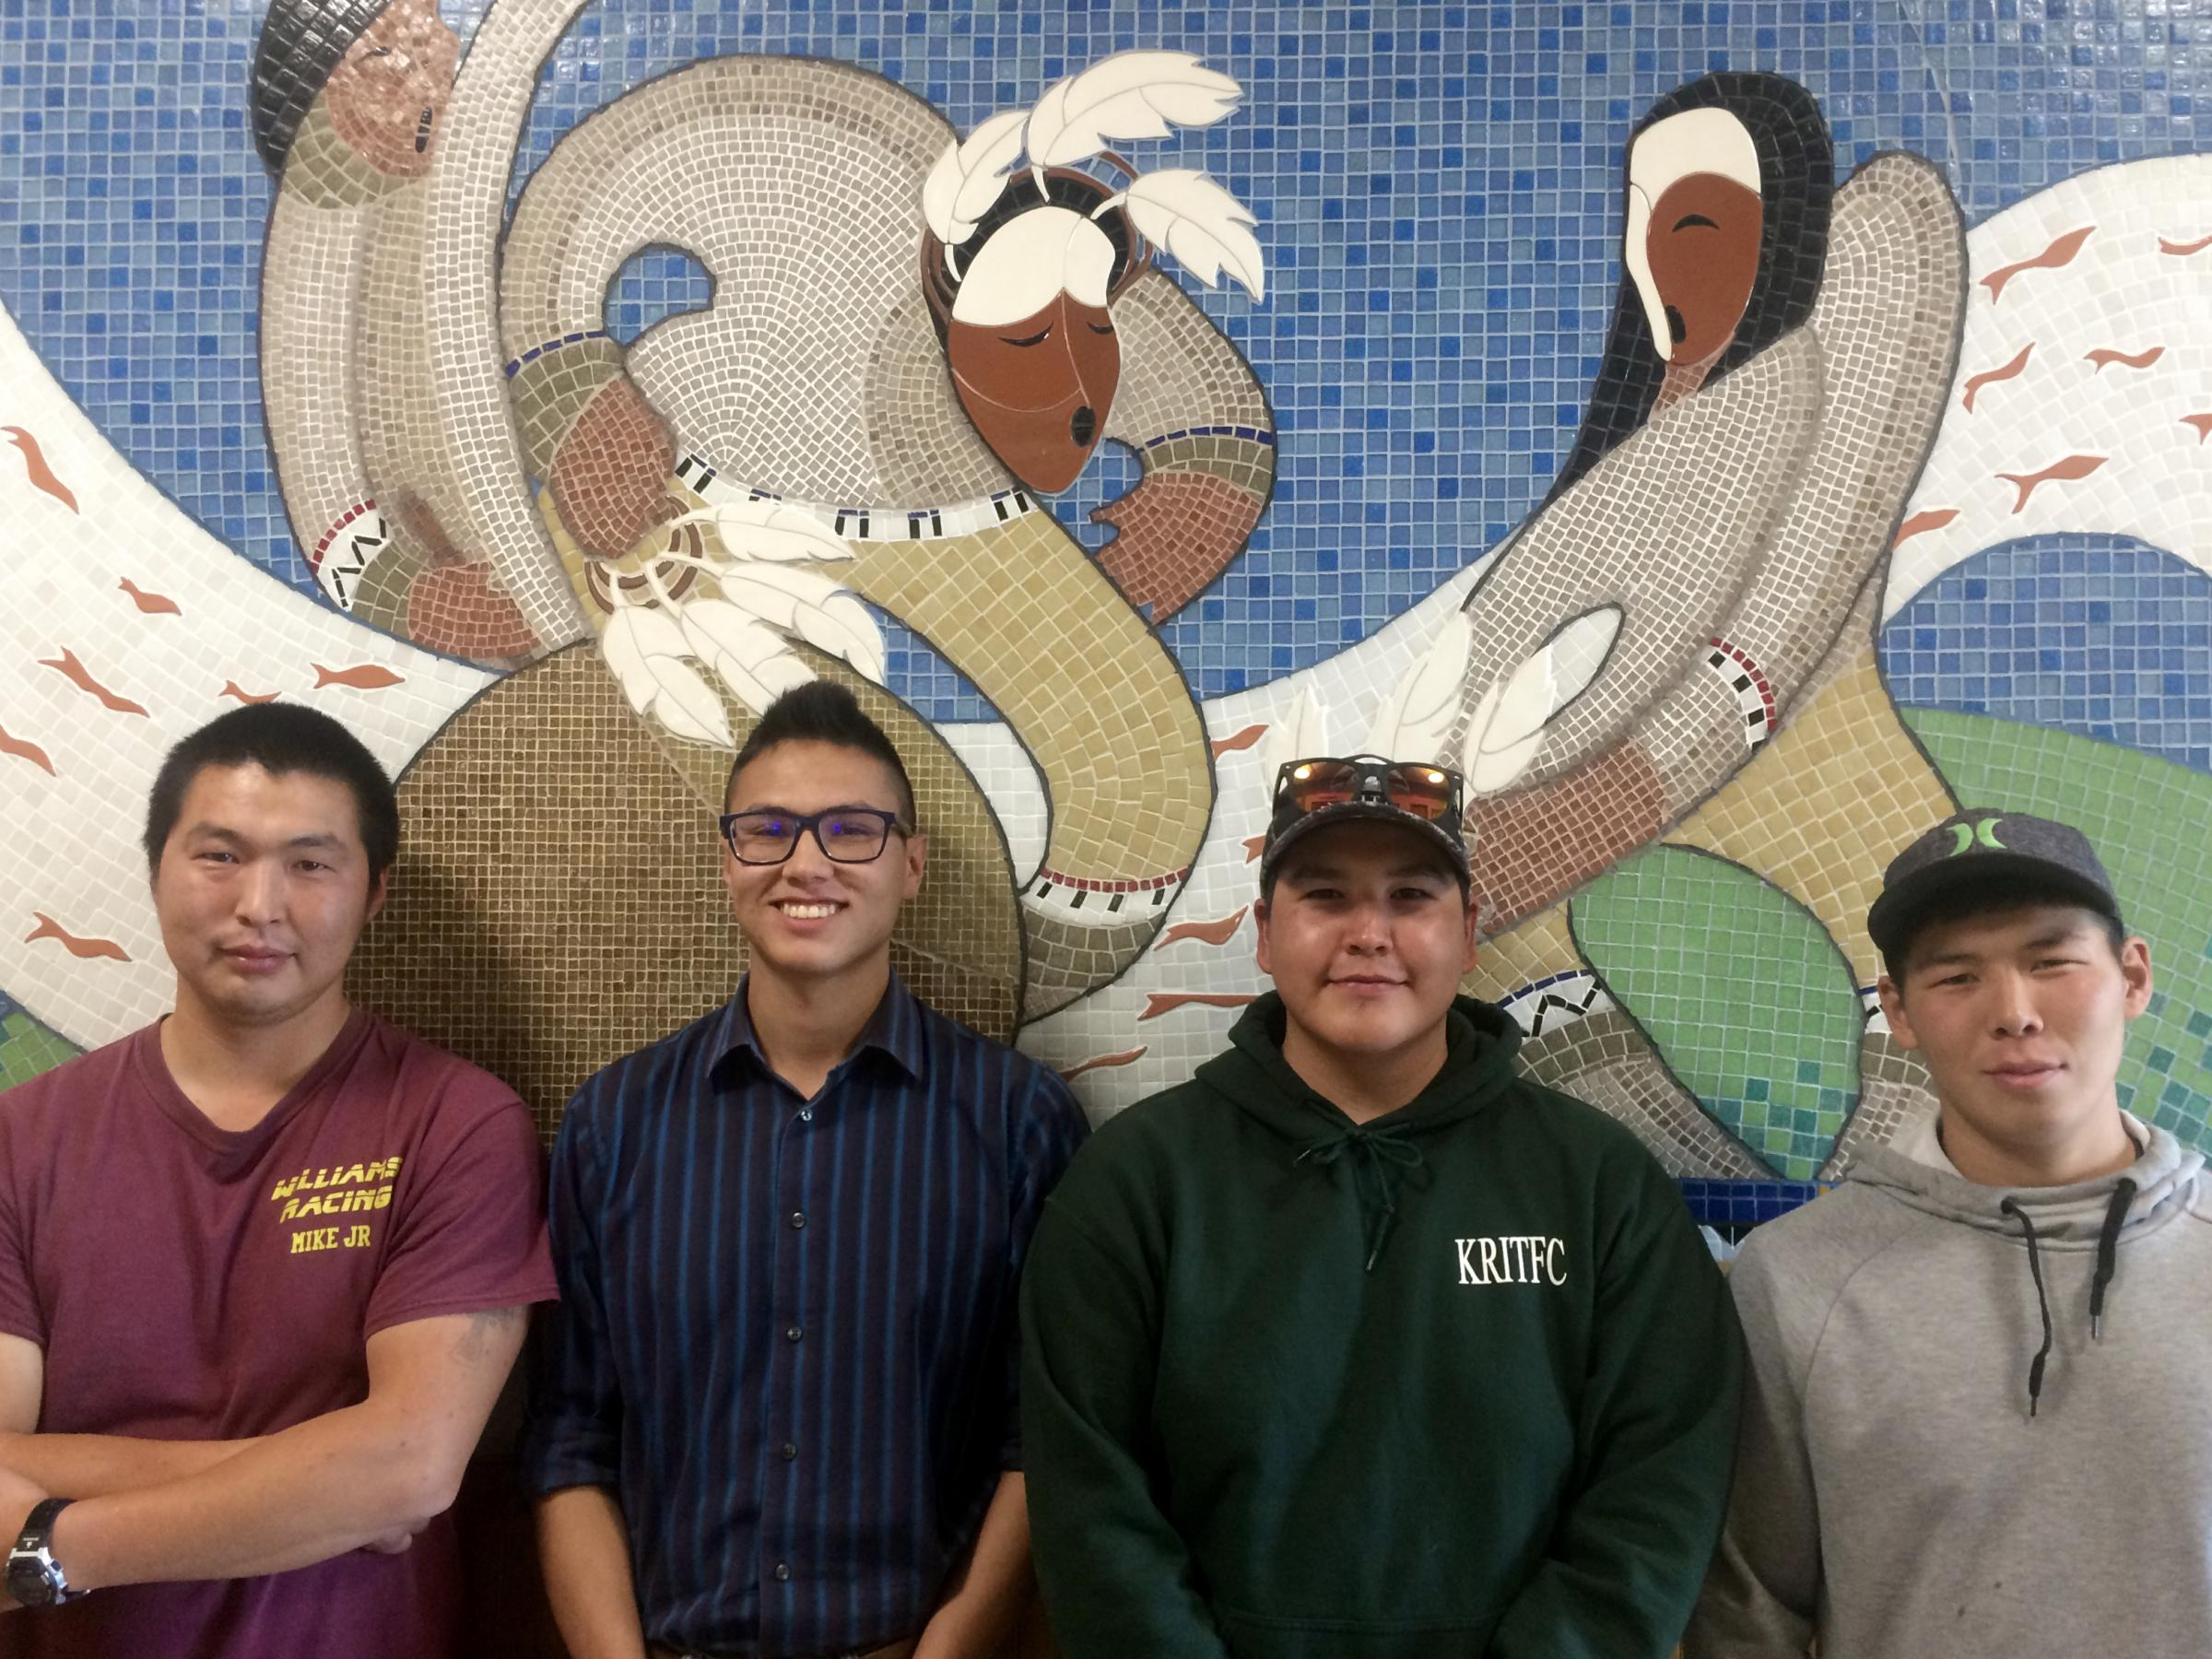 Community harvest monitors working with the Bering Sea Fishermen's Association in Kuskokwim villages: (left to right) Mike Williams Jr., Ben Agimuk, Jackie Larson, and Bernard Williams. (Photo by Anna Rose MacArthur/KYUK)